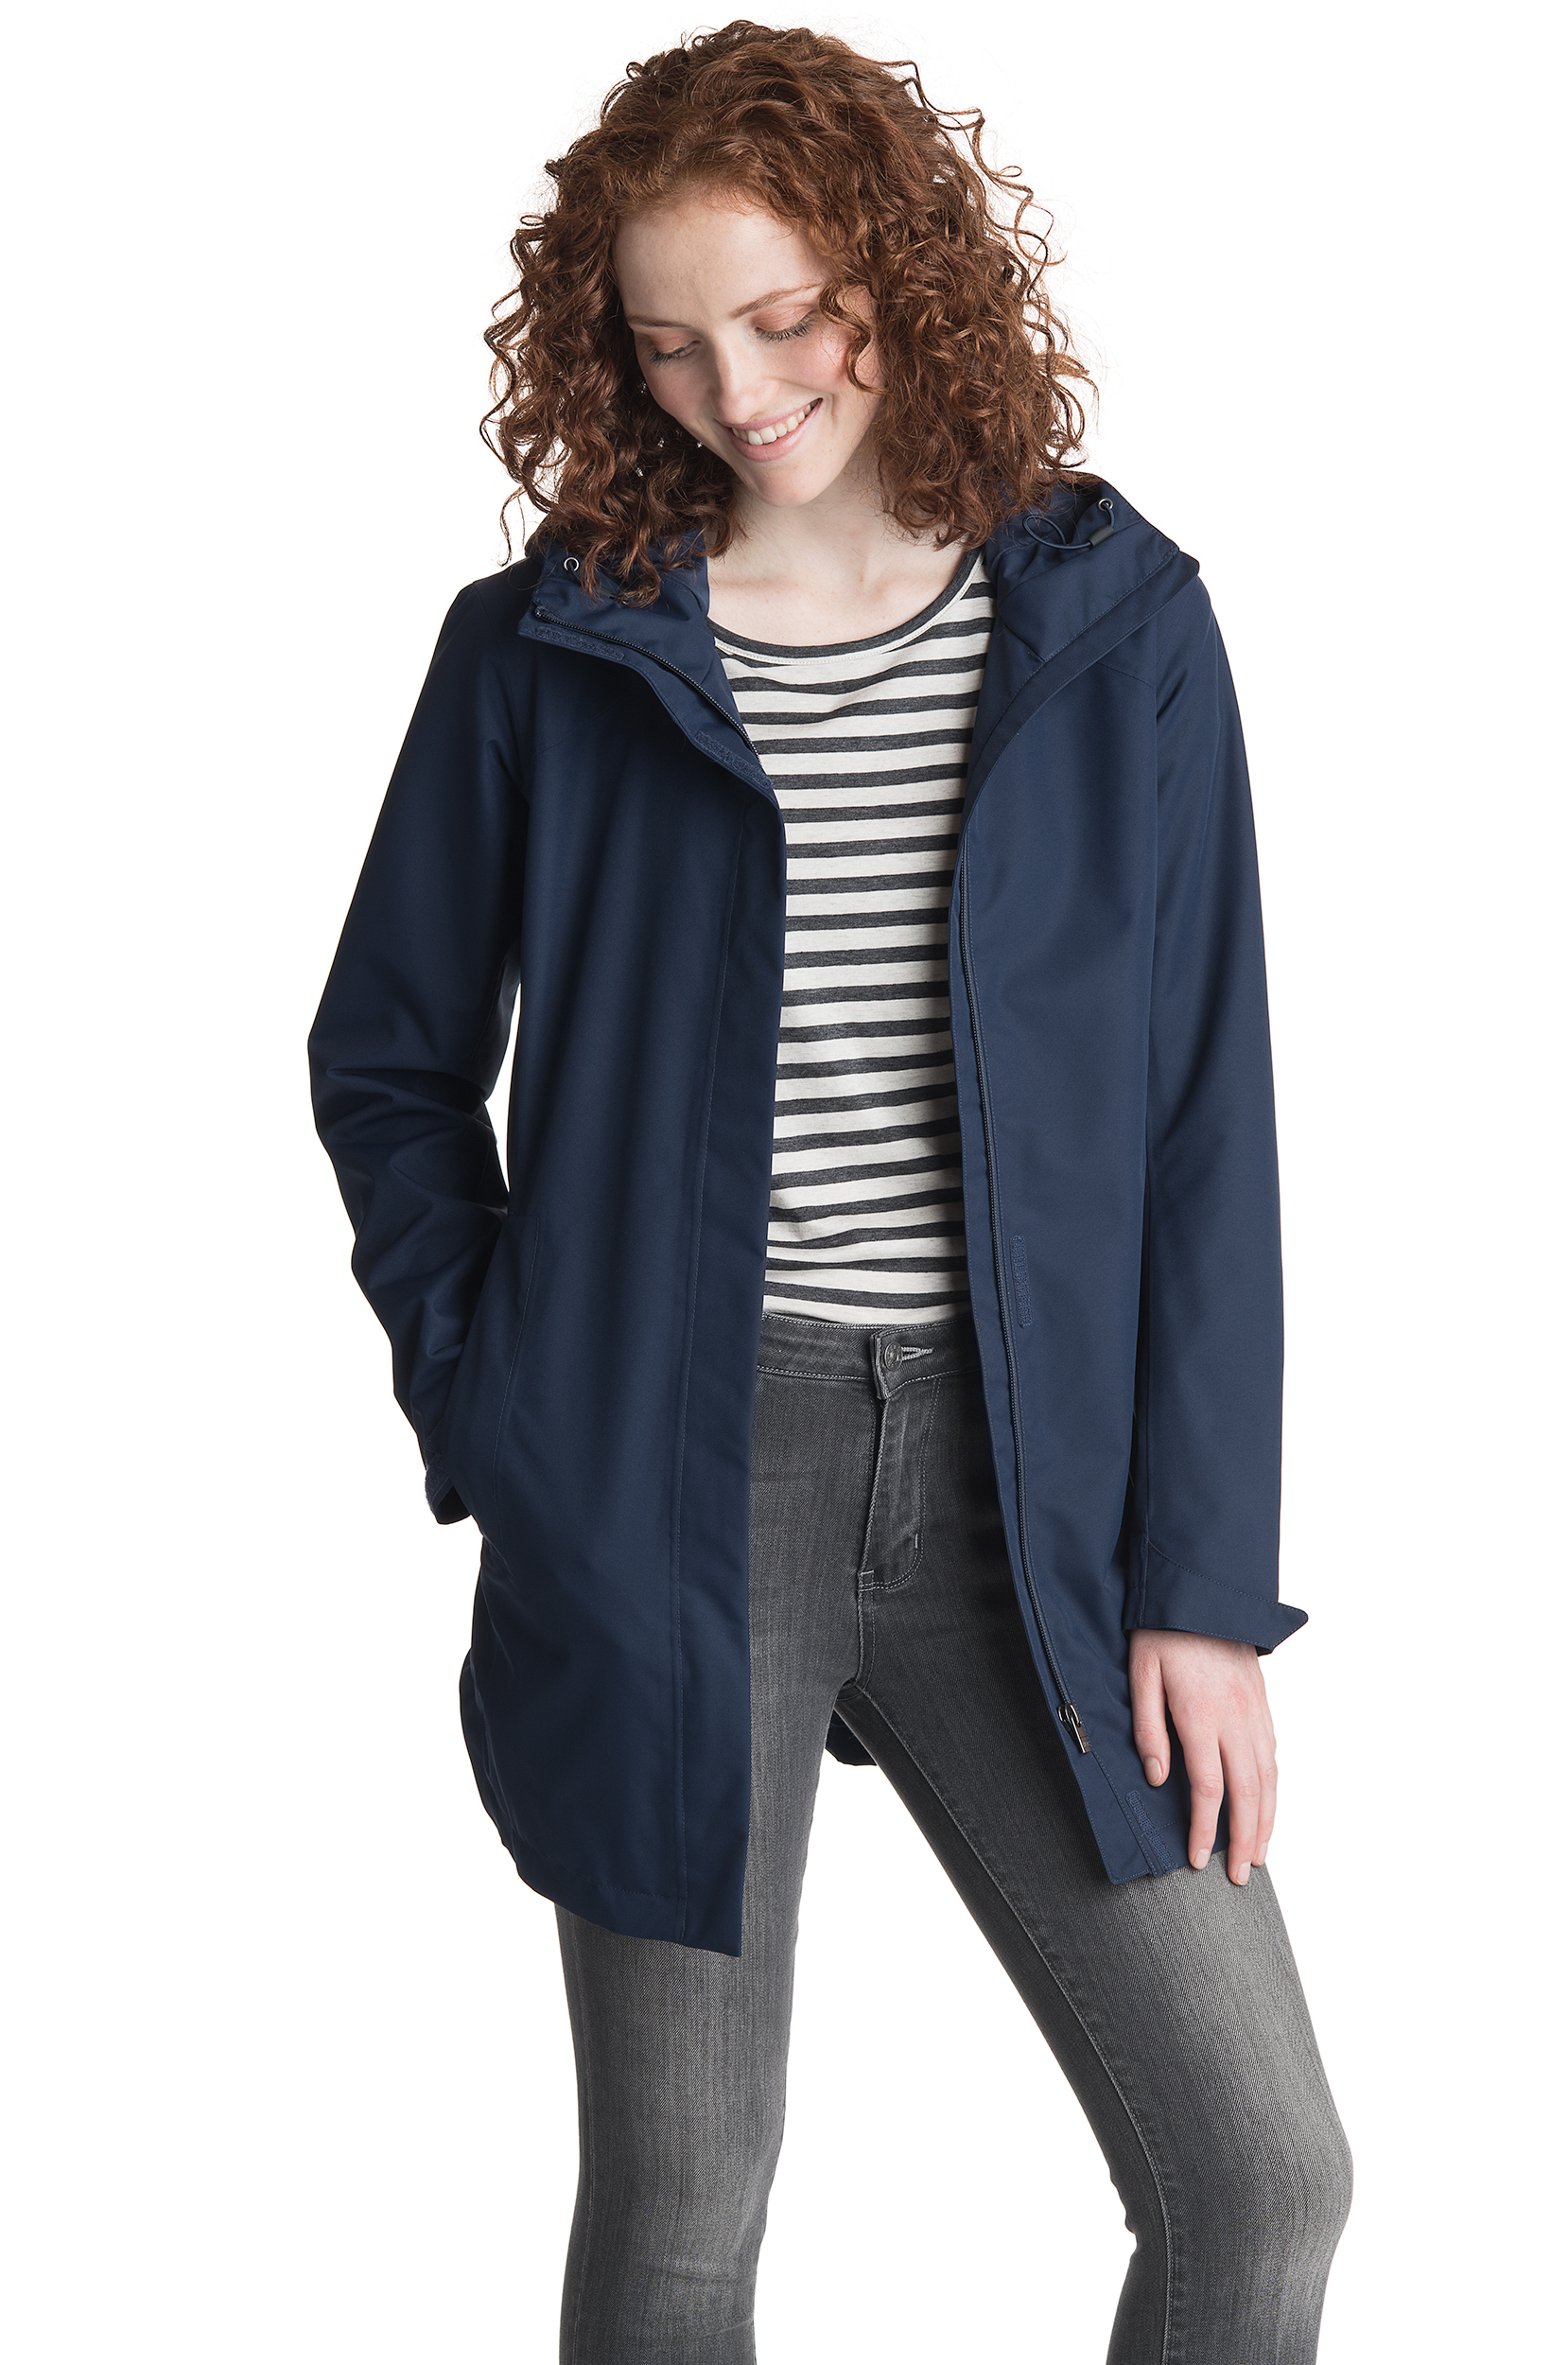 Womens Winter Coats Clearance Canada Tradingbasis